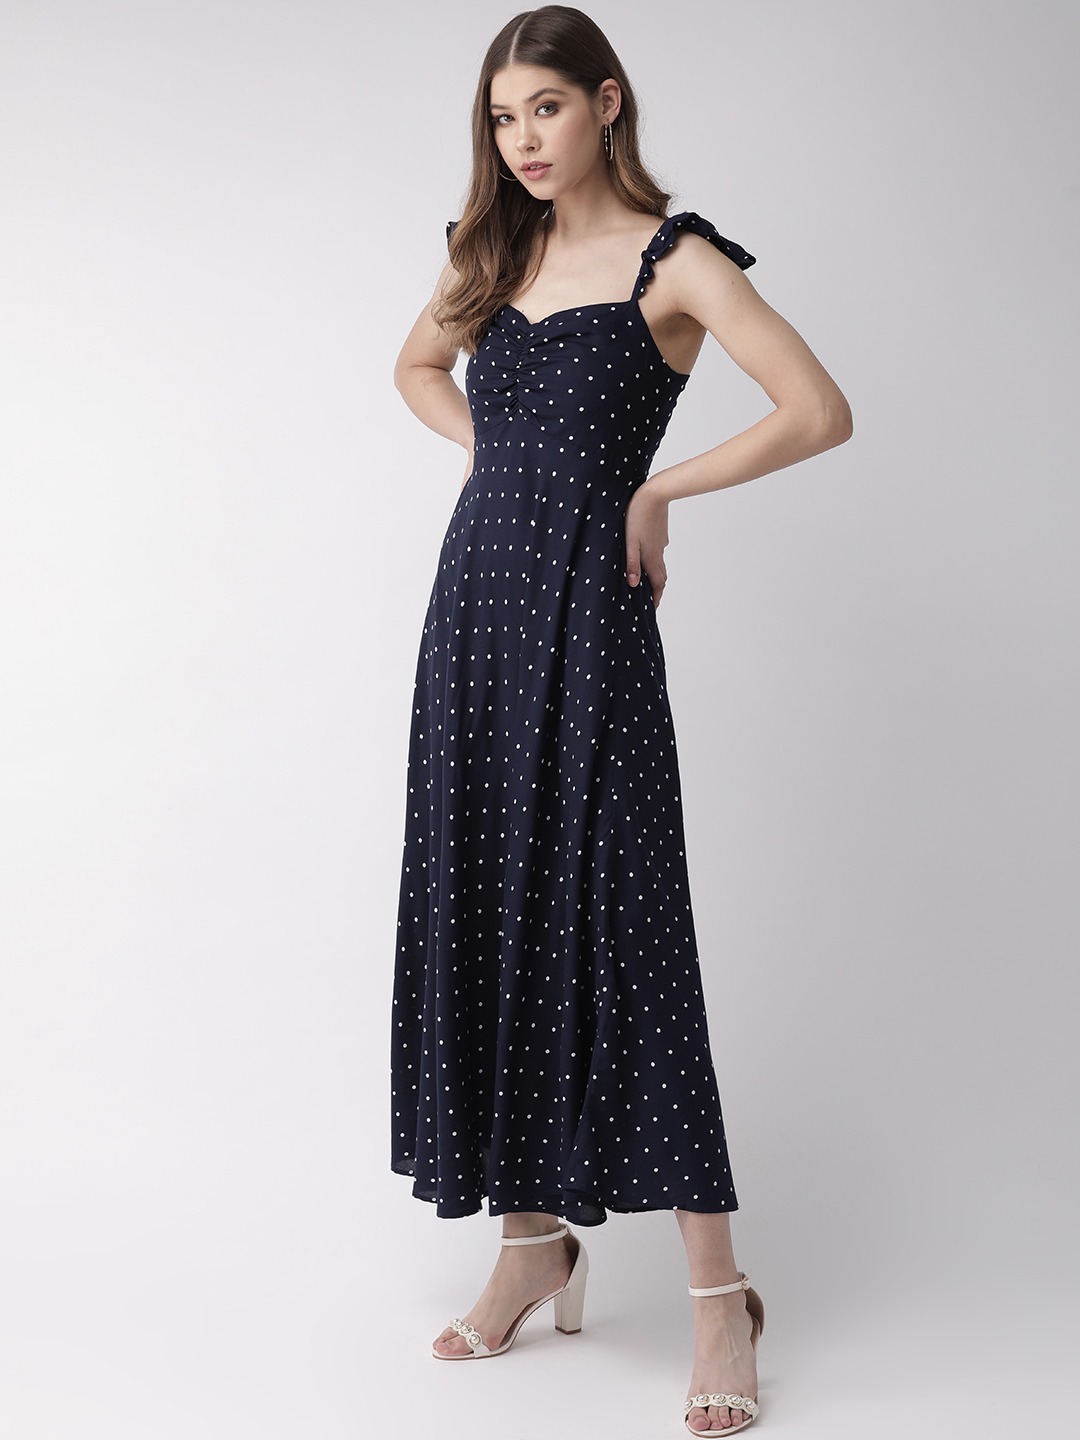 Dresses-The Polka Playful Midi Dress2